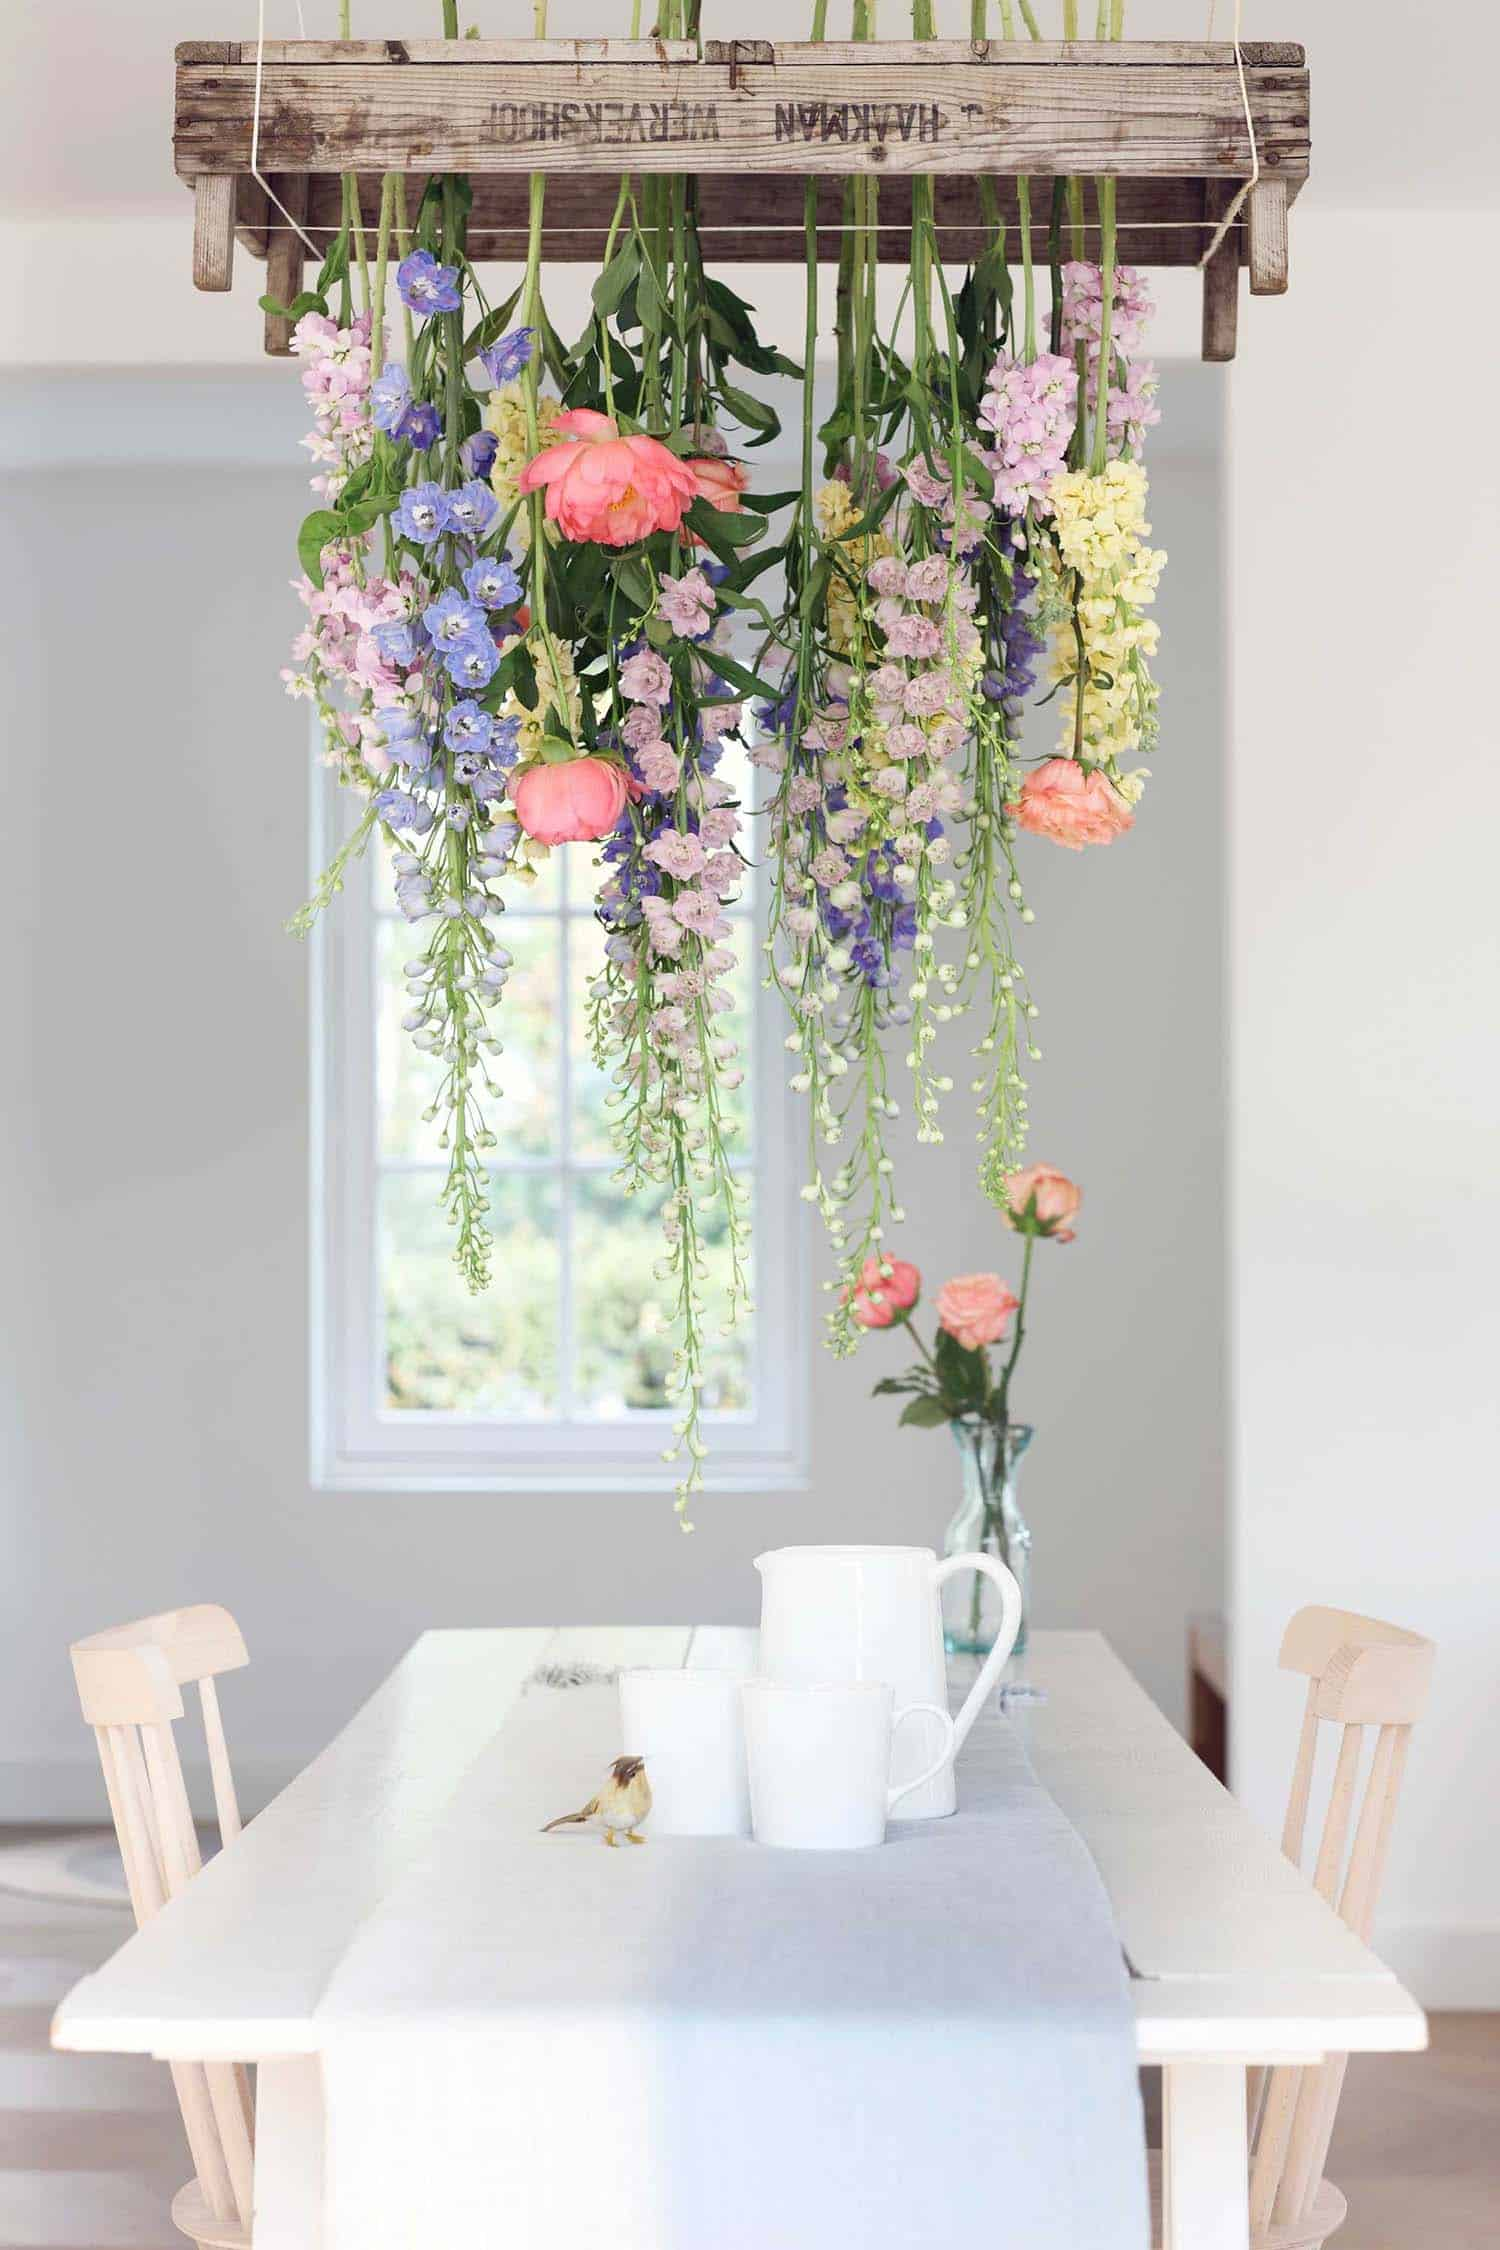 How To Decorate Your Home With Spring Floral Arrangements-02-1 Kindesign